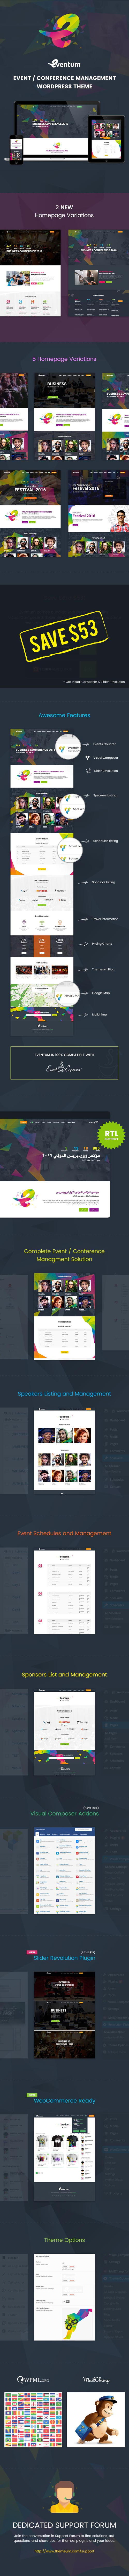 Eventum - Conference & Event WordPress Theme for Event & Conference ...